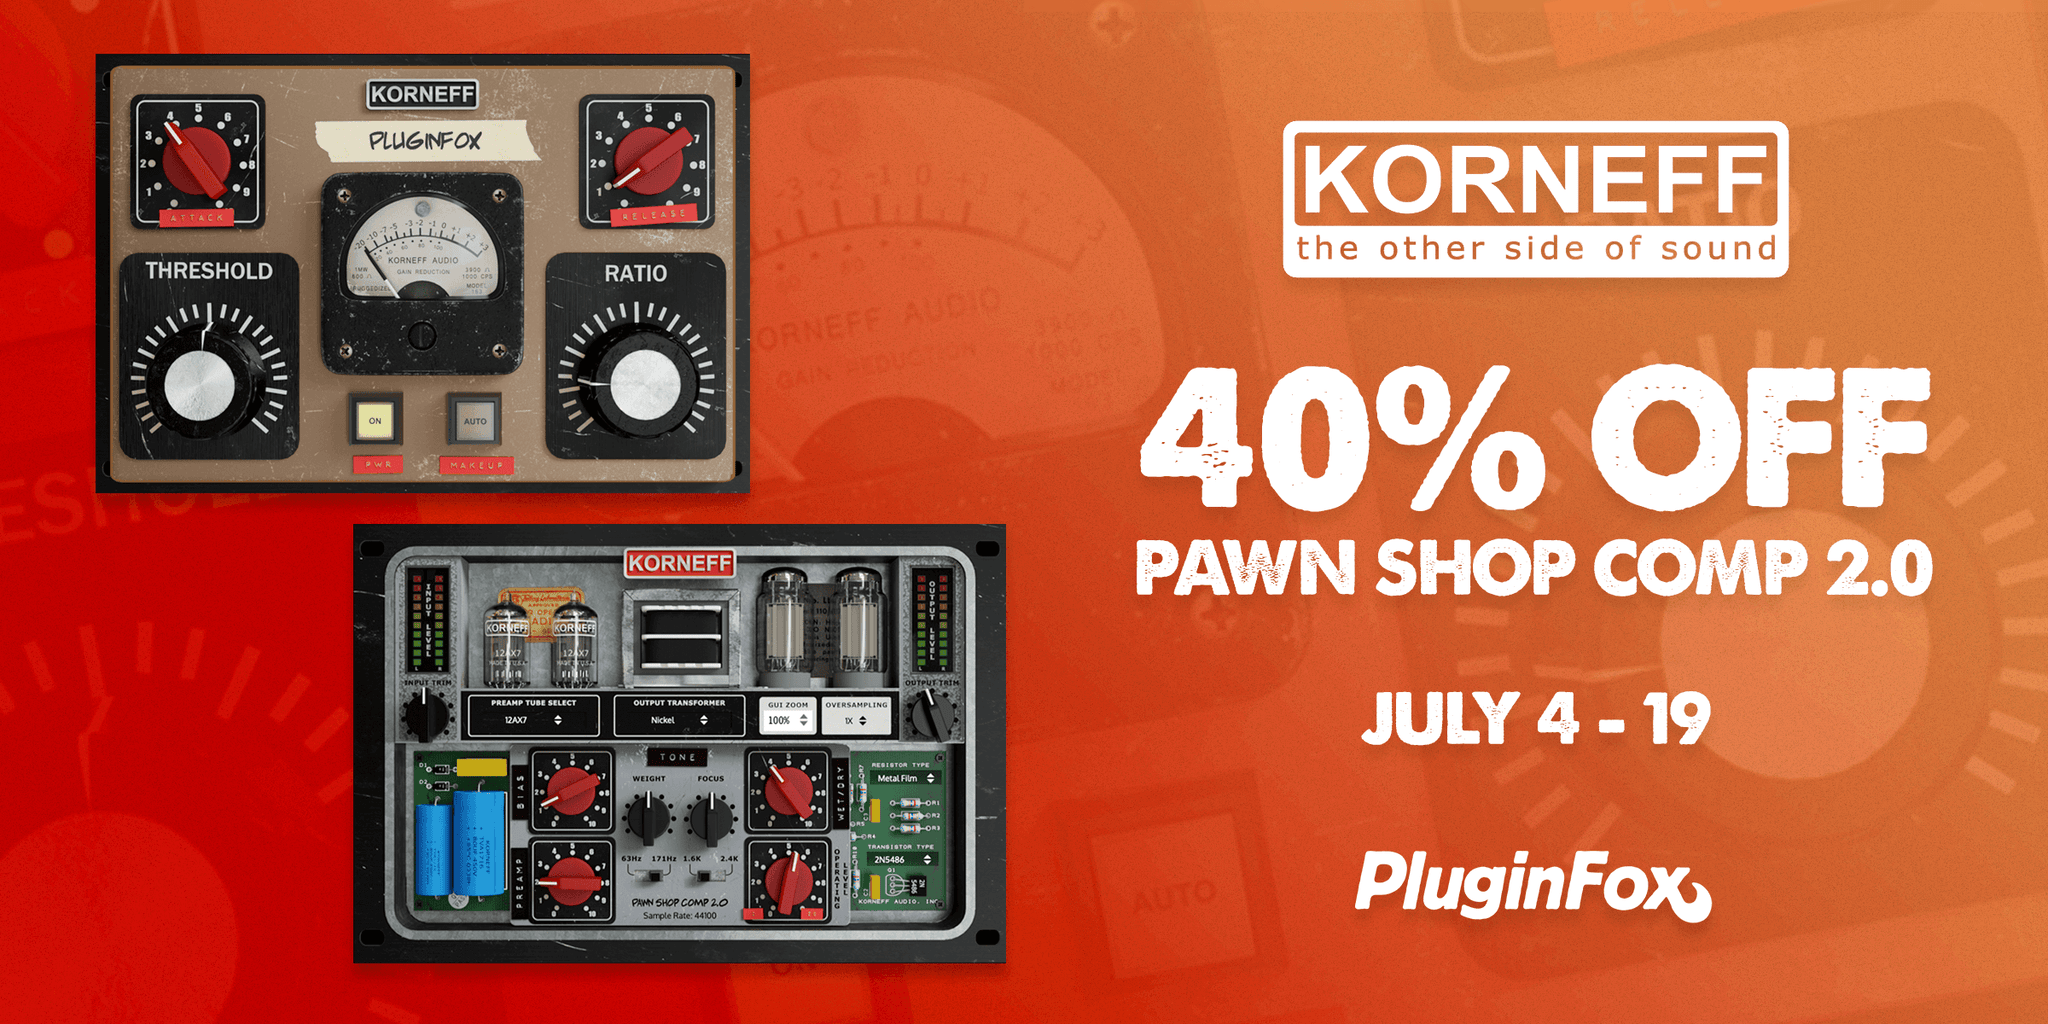 Korneff Audio Intro Sale - July 4-19